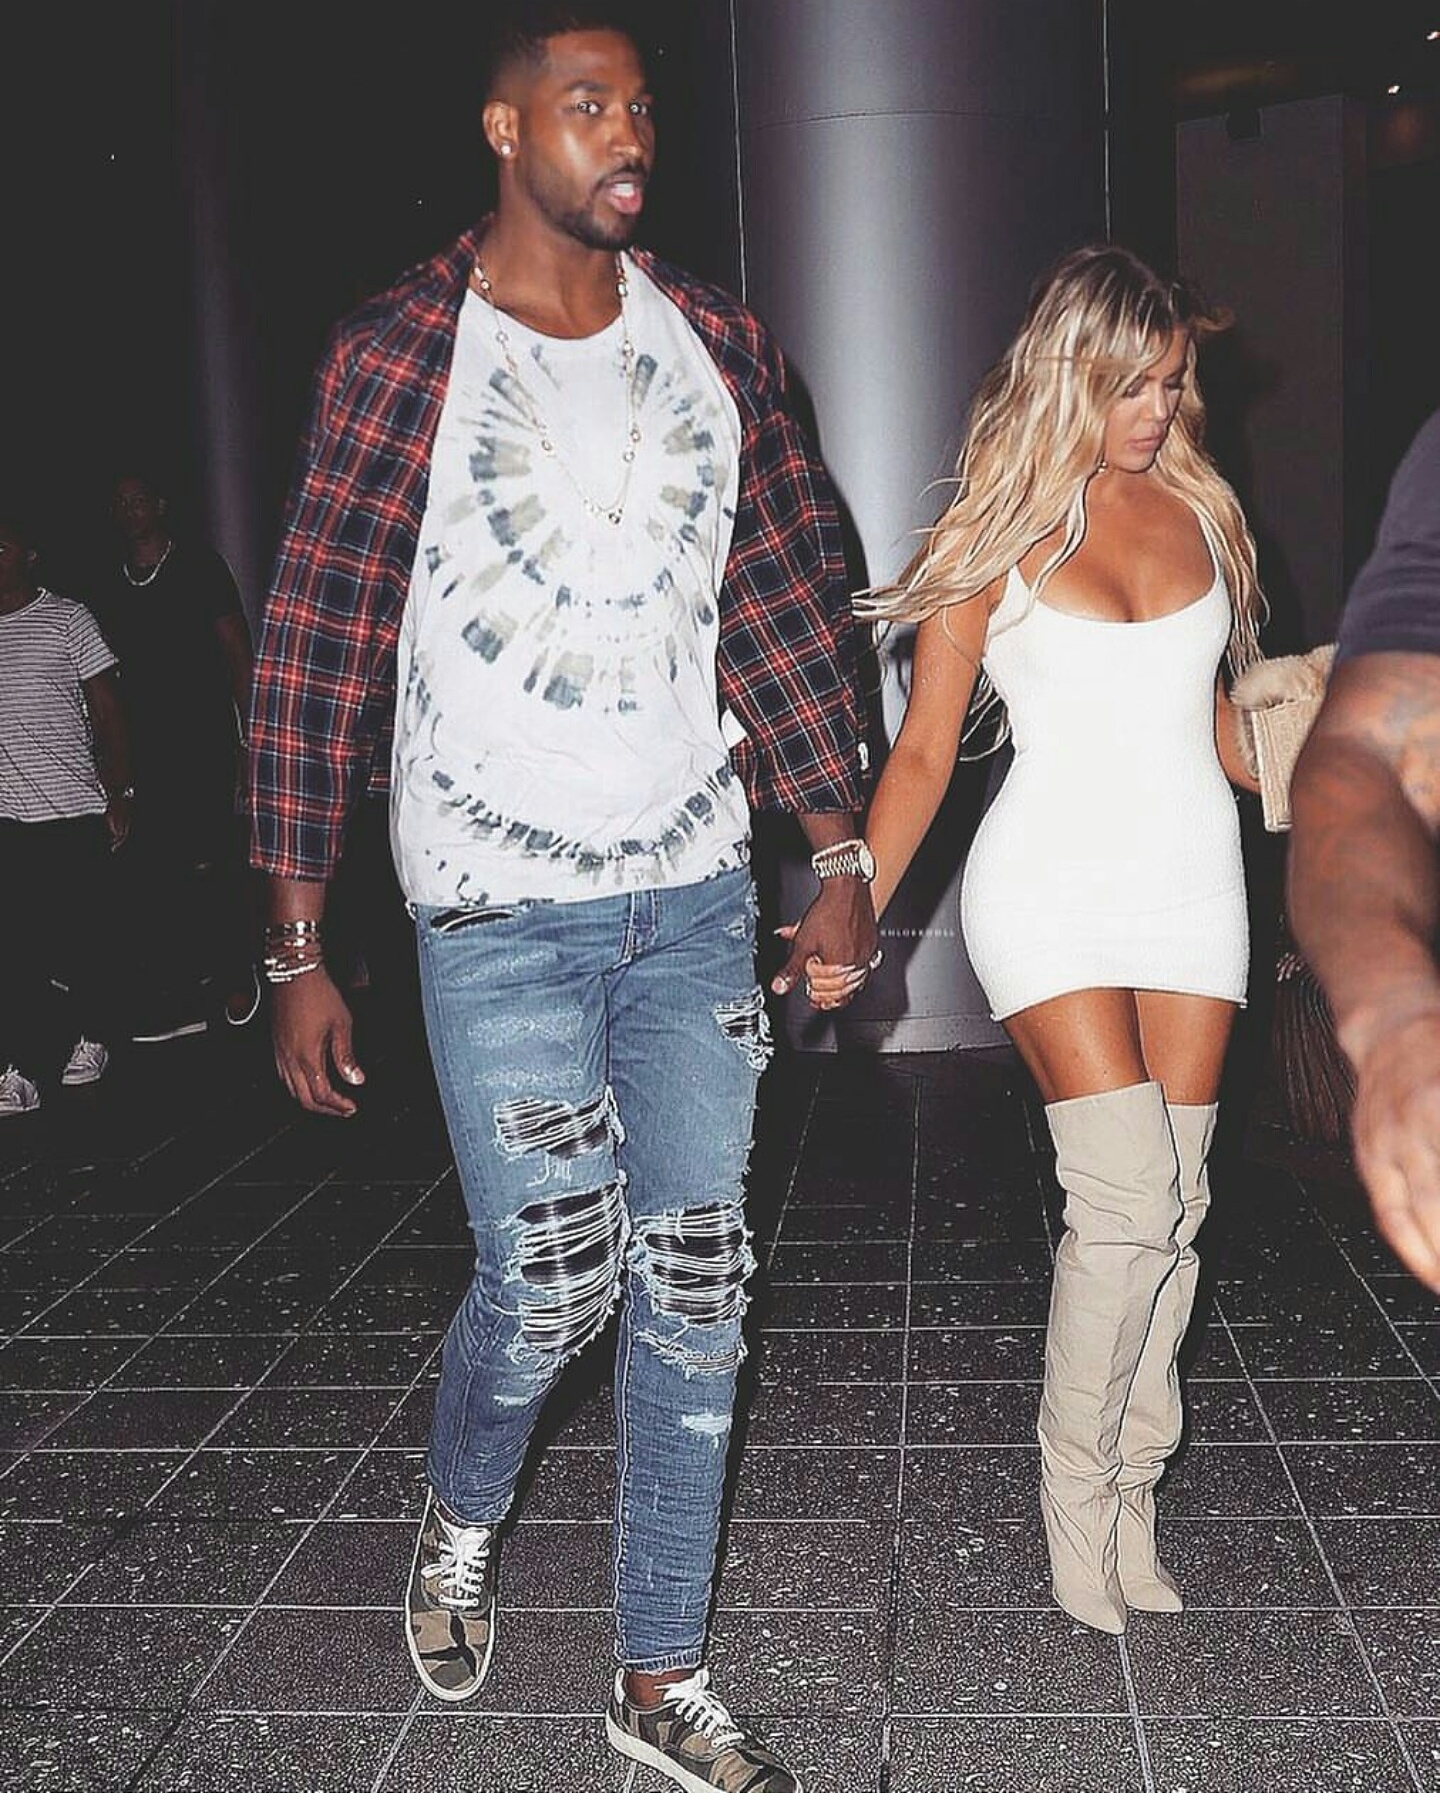 Tristan Thompson & Khloe Kardasian Spotted: Tristan Wears Gucci Flannel, Valentino t-shirt, Mike Amiri Jeans, And Saint Laurent Sneakers